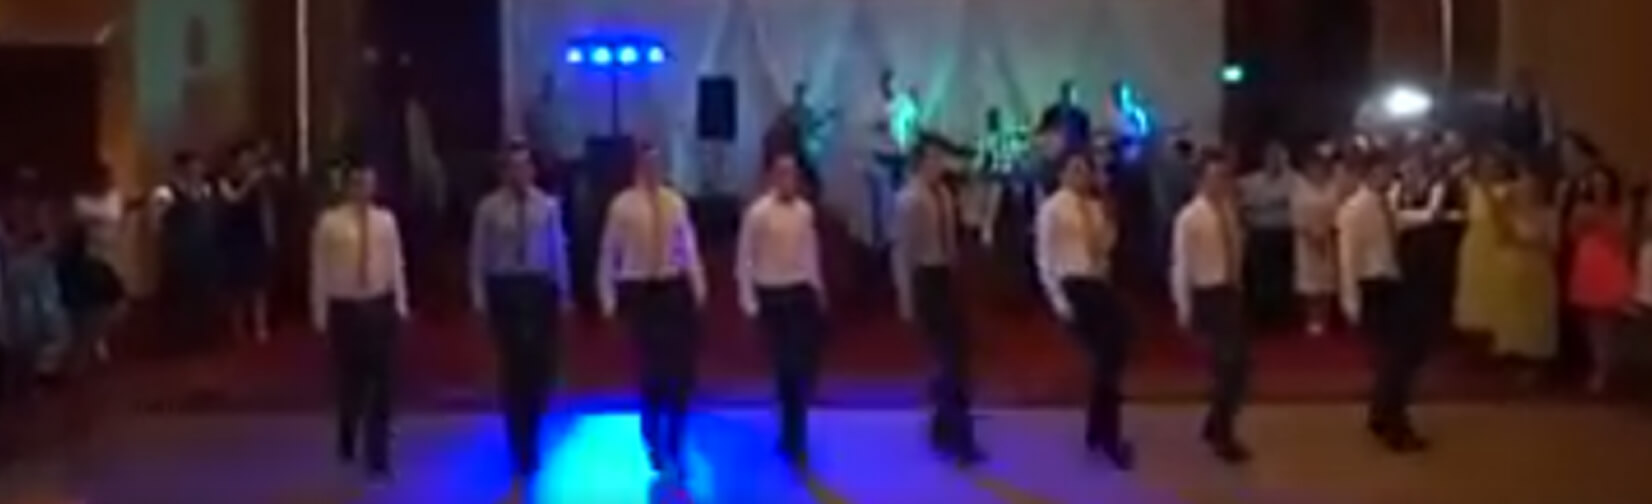 Irish groom gets old Irish dancing crew, back together for incredible wedding surprise